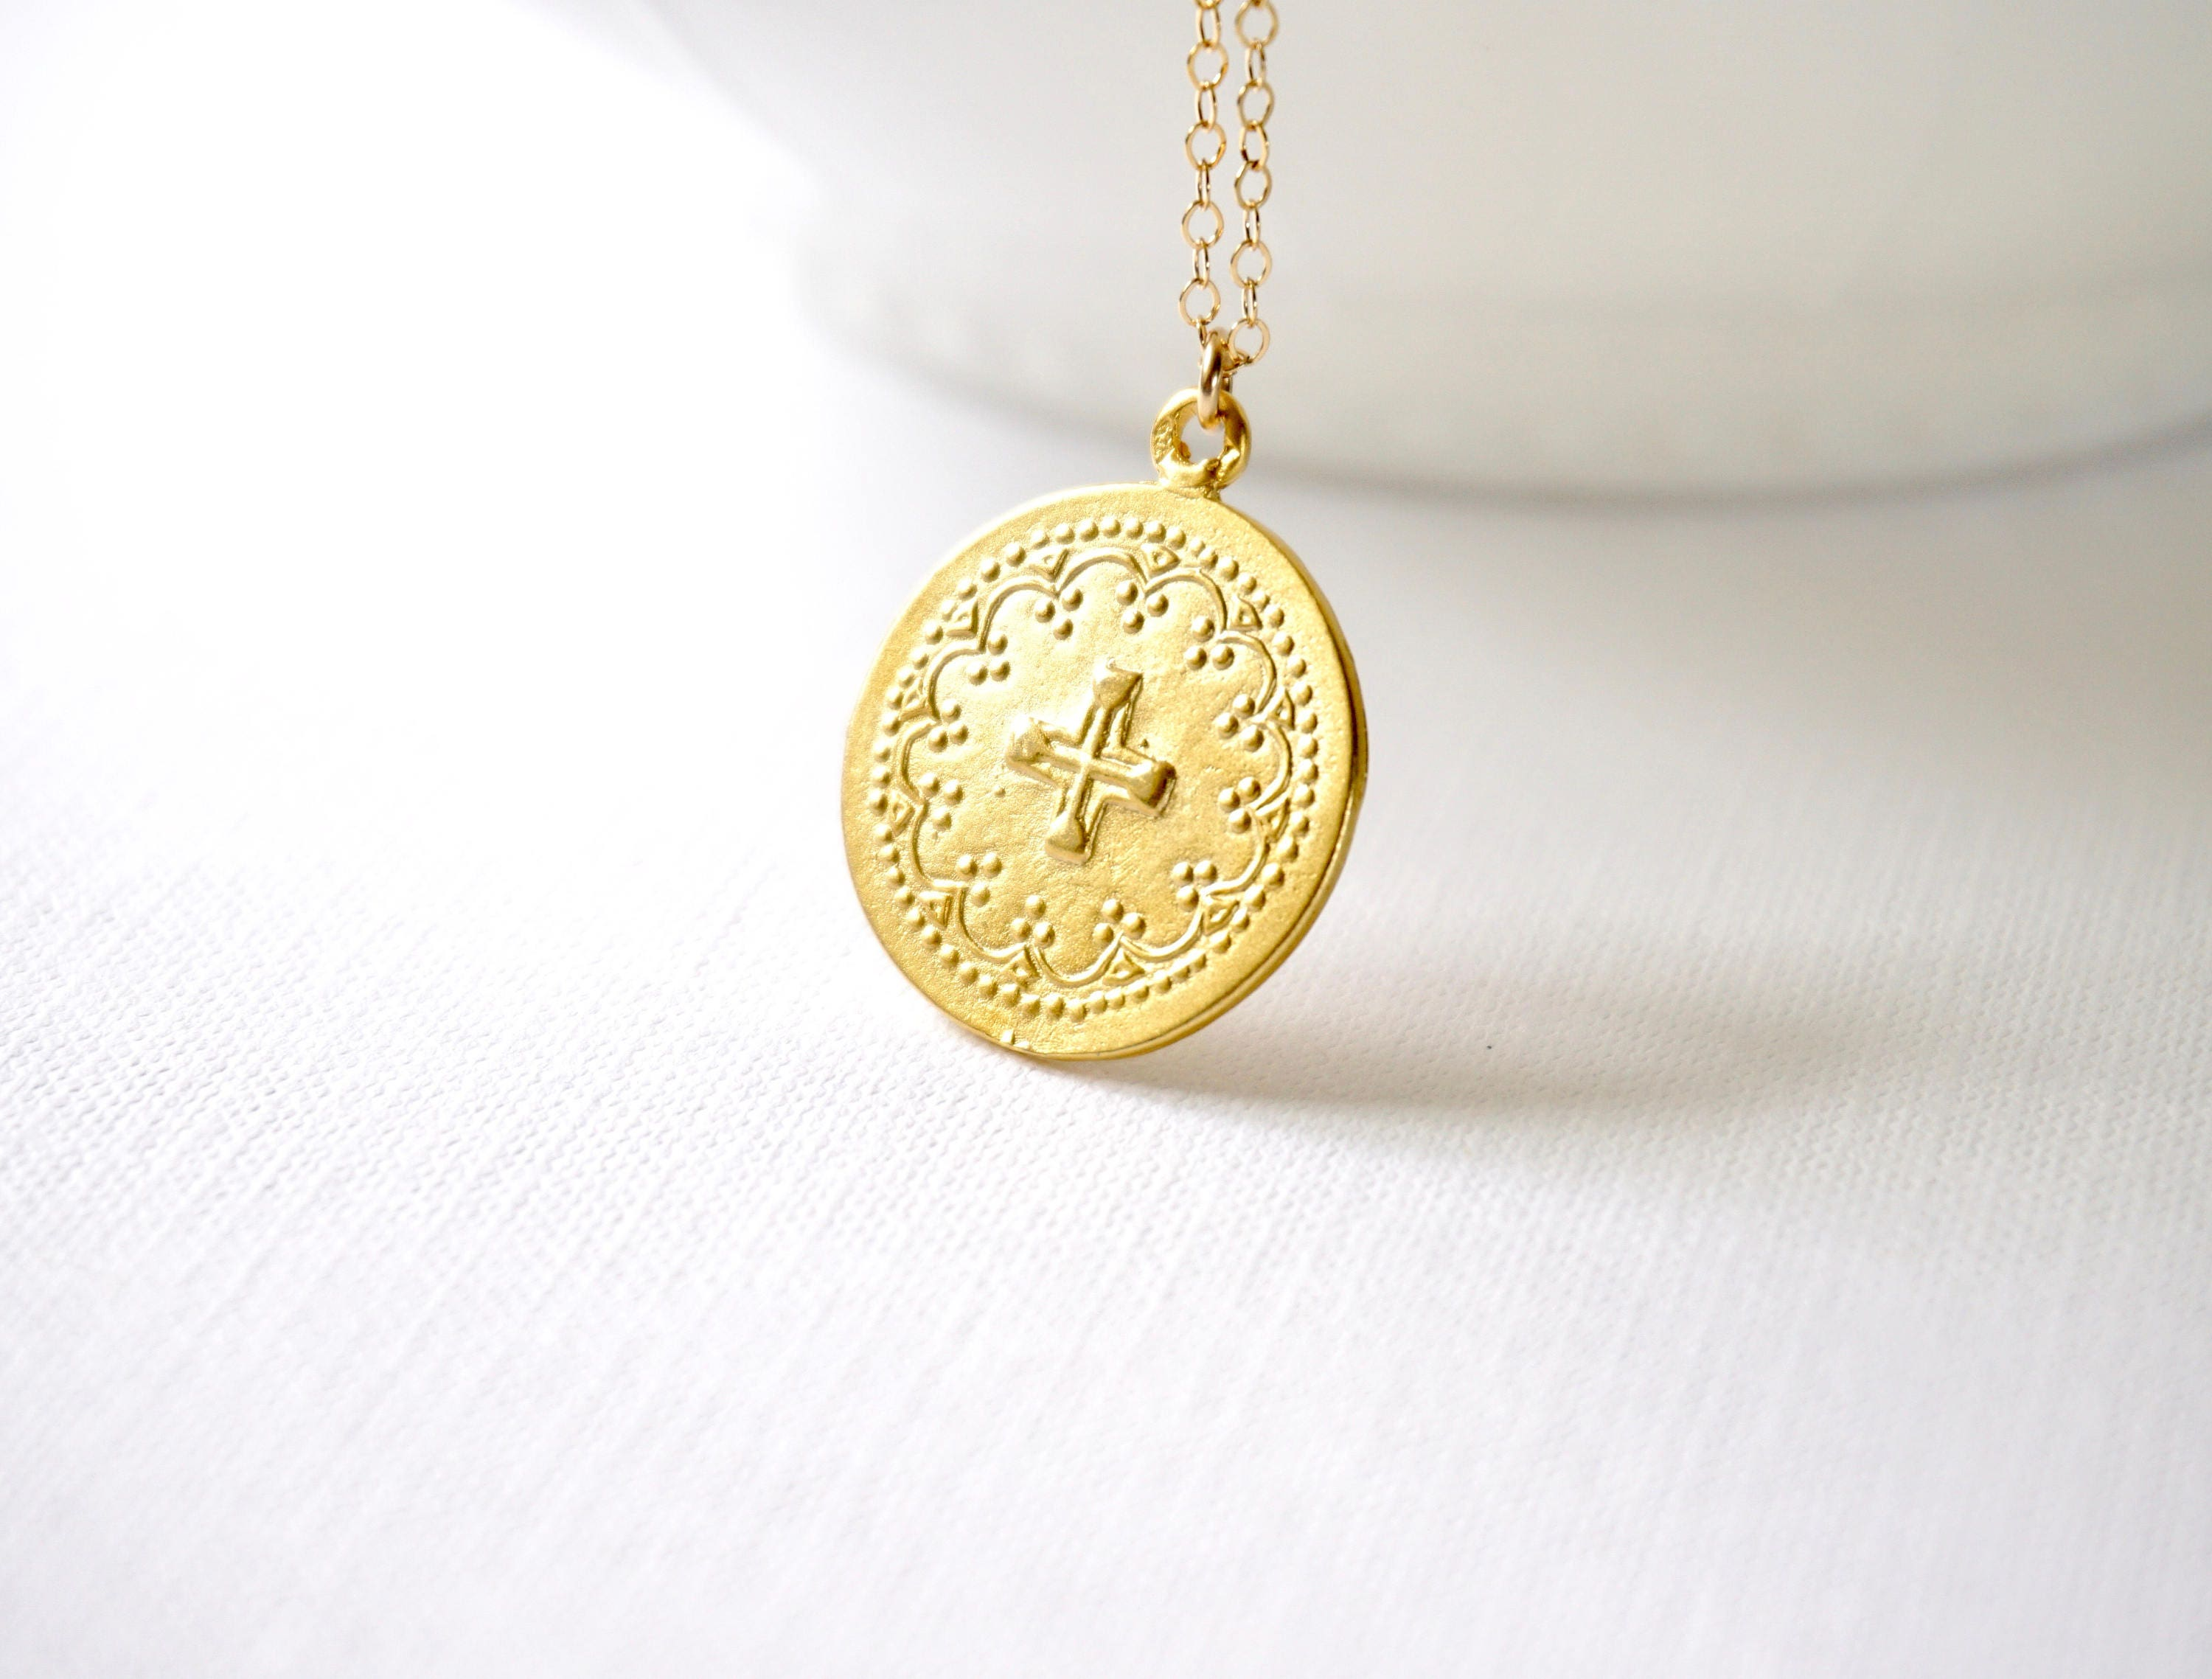 necklace cc enlarged products jewelry medallion the chanel pendant necklaces